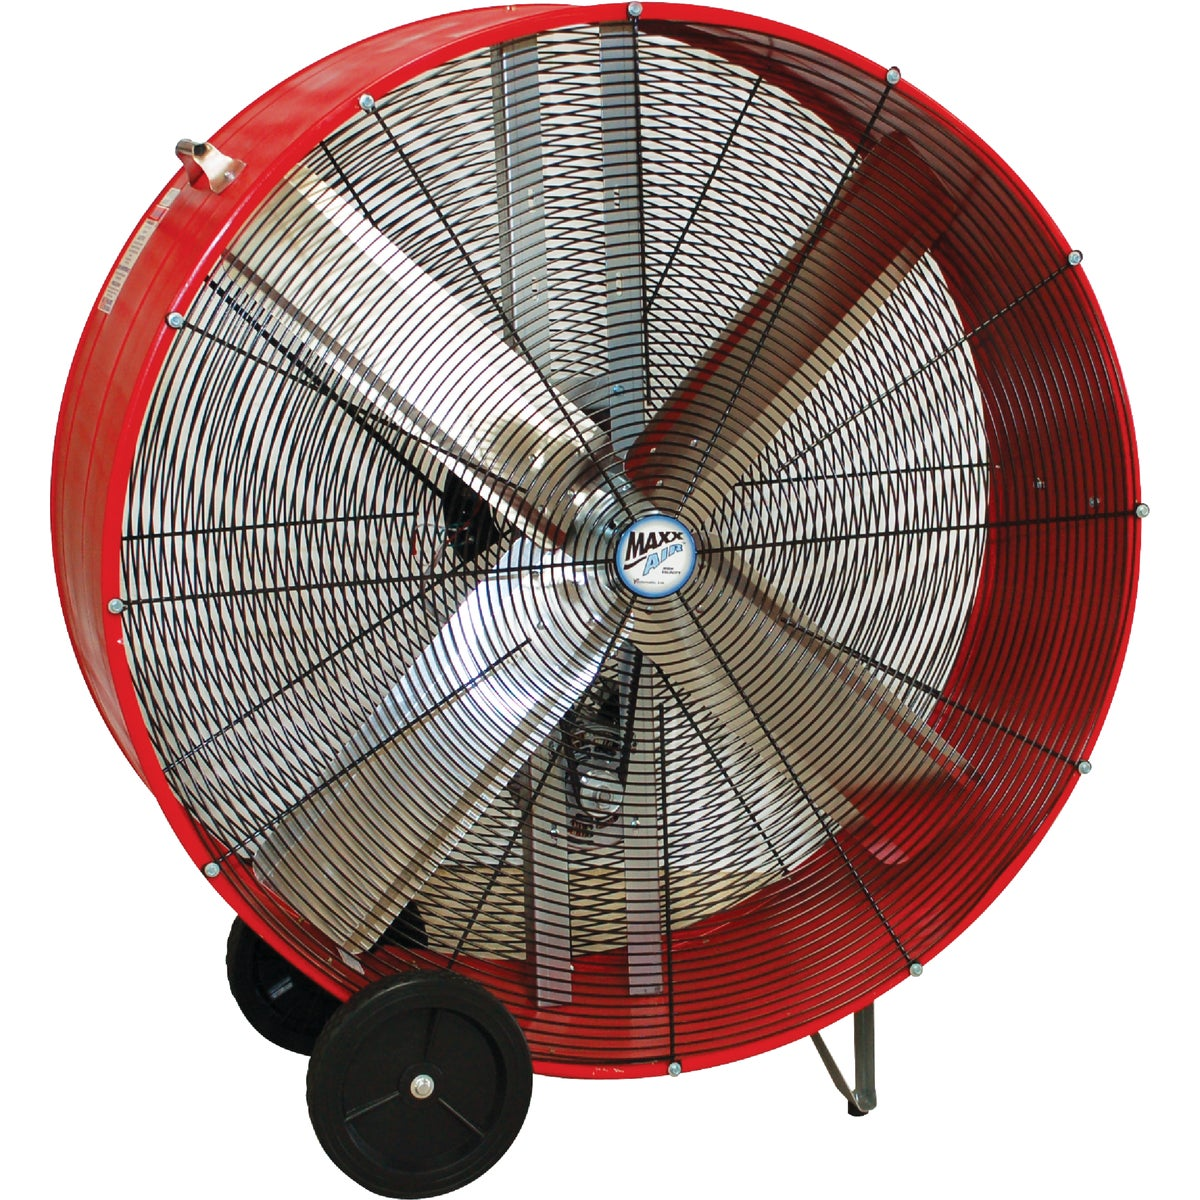 Ventamatic Maxx Air Belt Driven Industrial Drum Fan, BF42BD RED